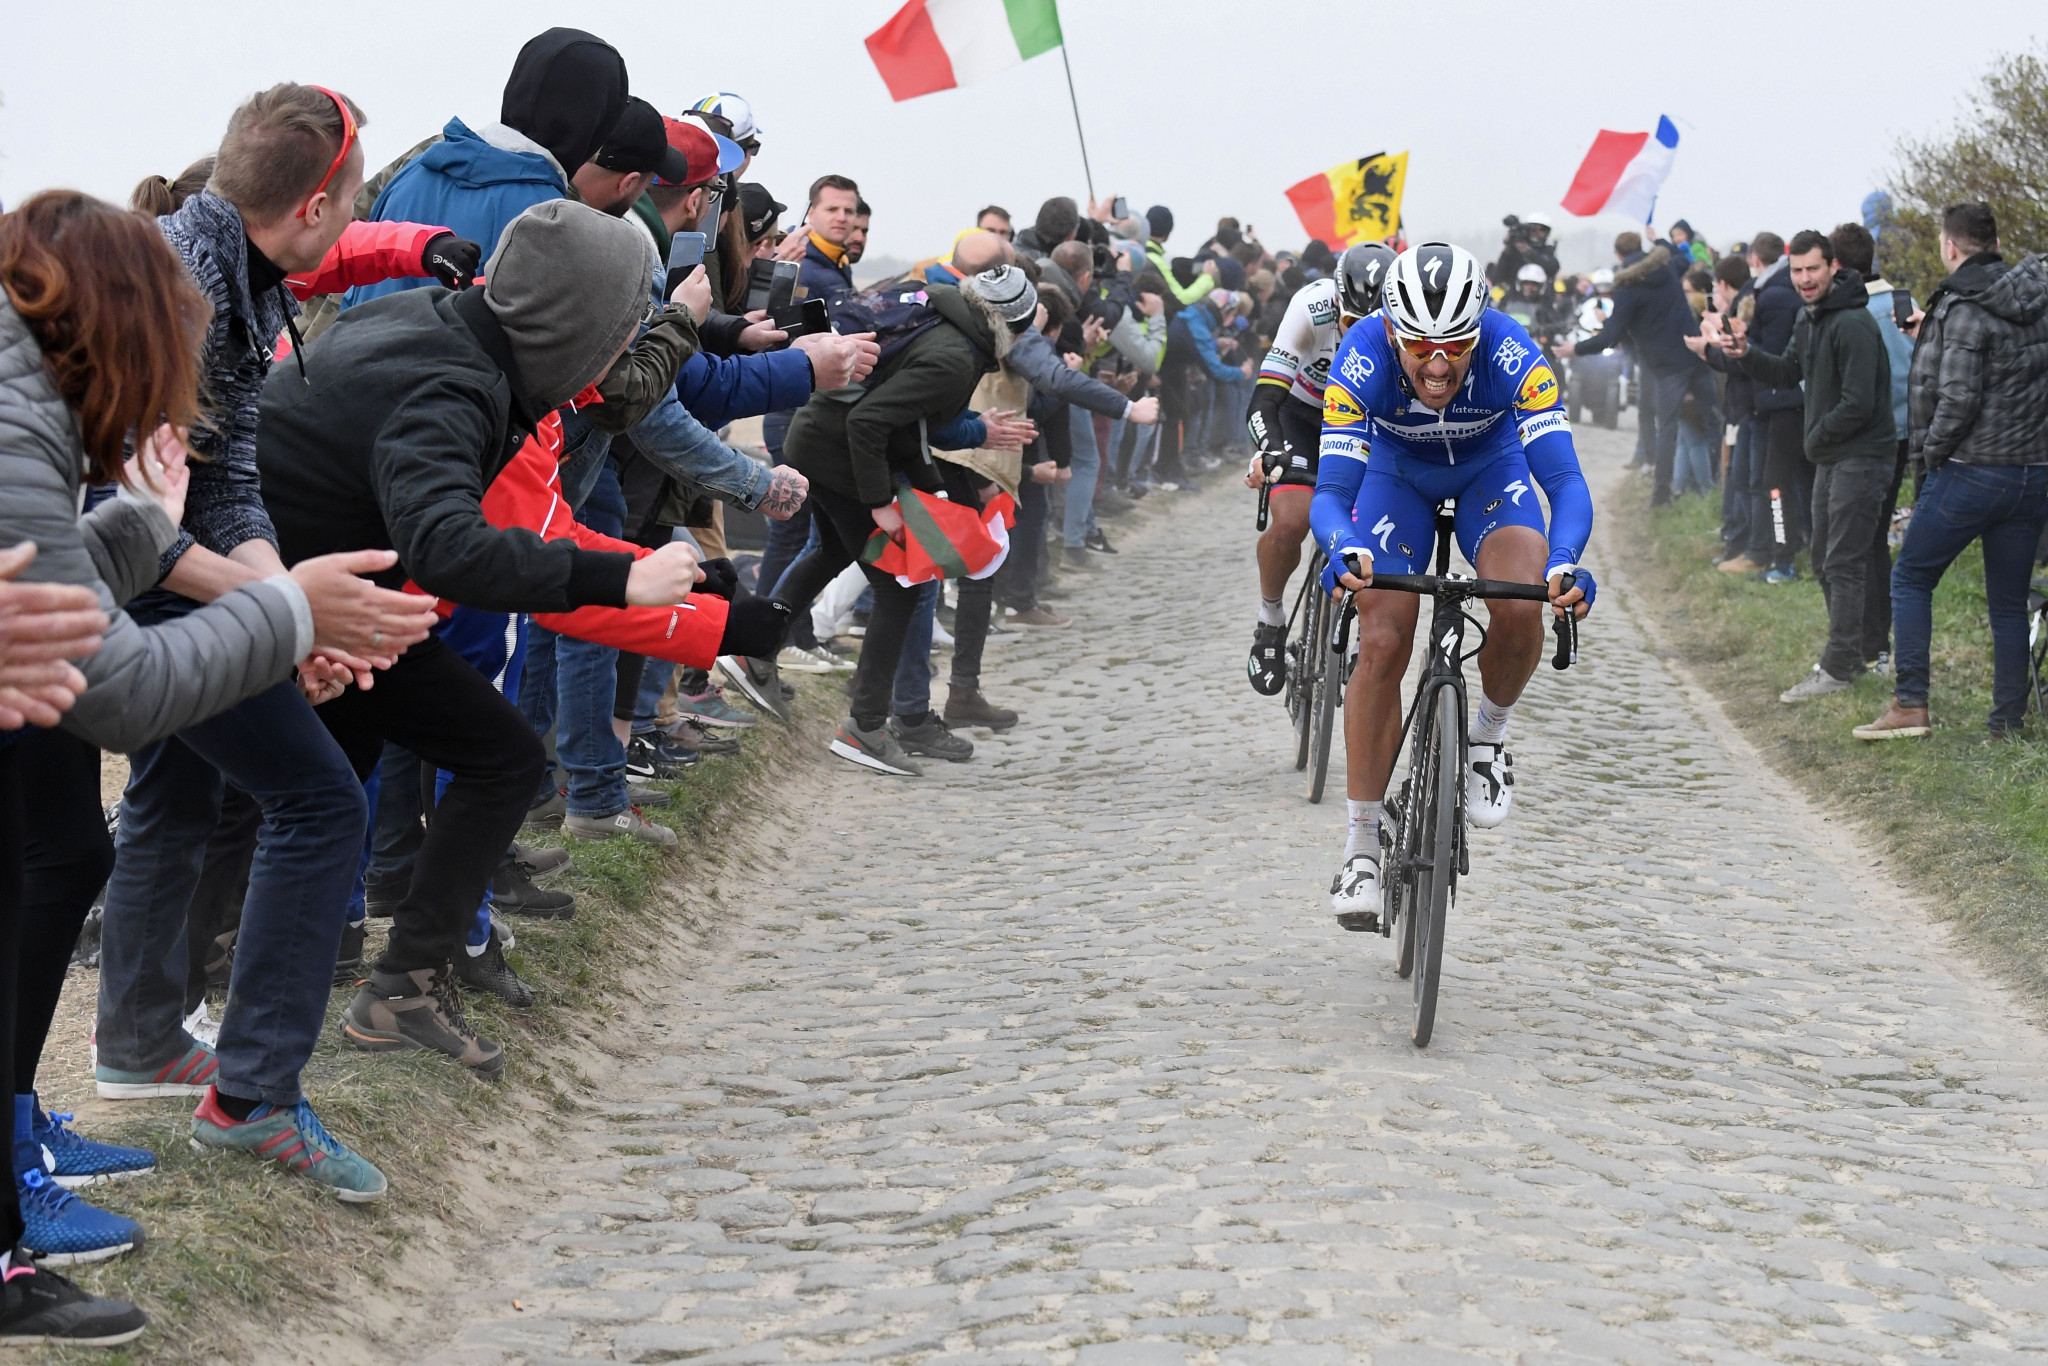 UCI confirms Paris-Roubaix moved to October after national lockdown in France